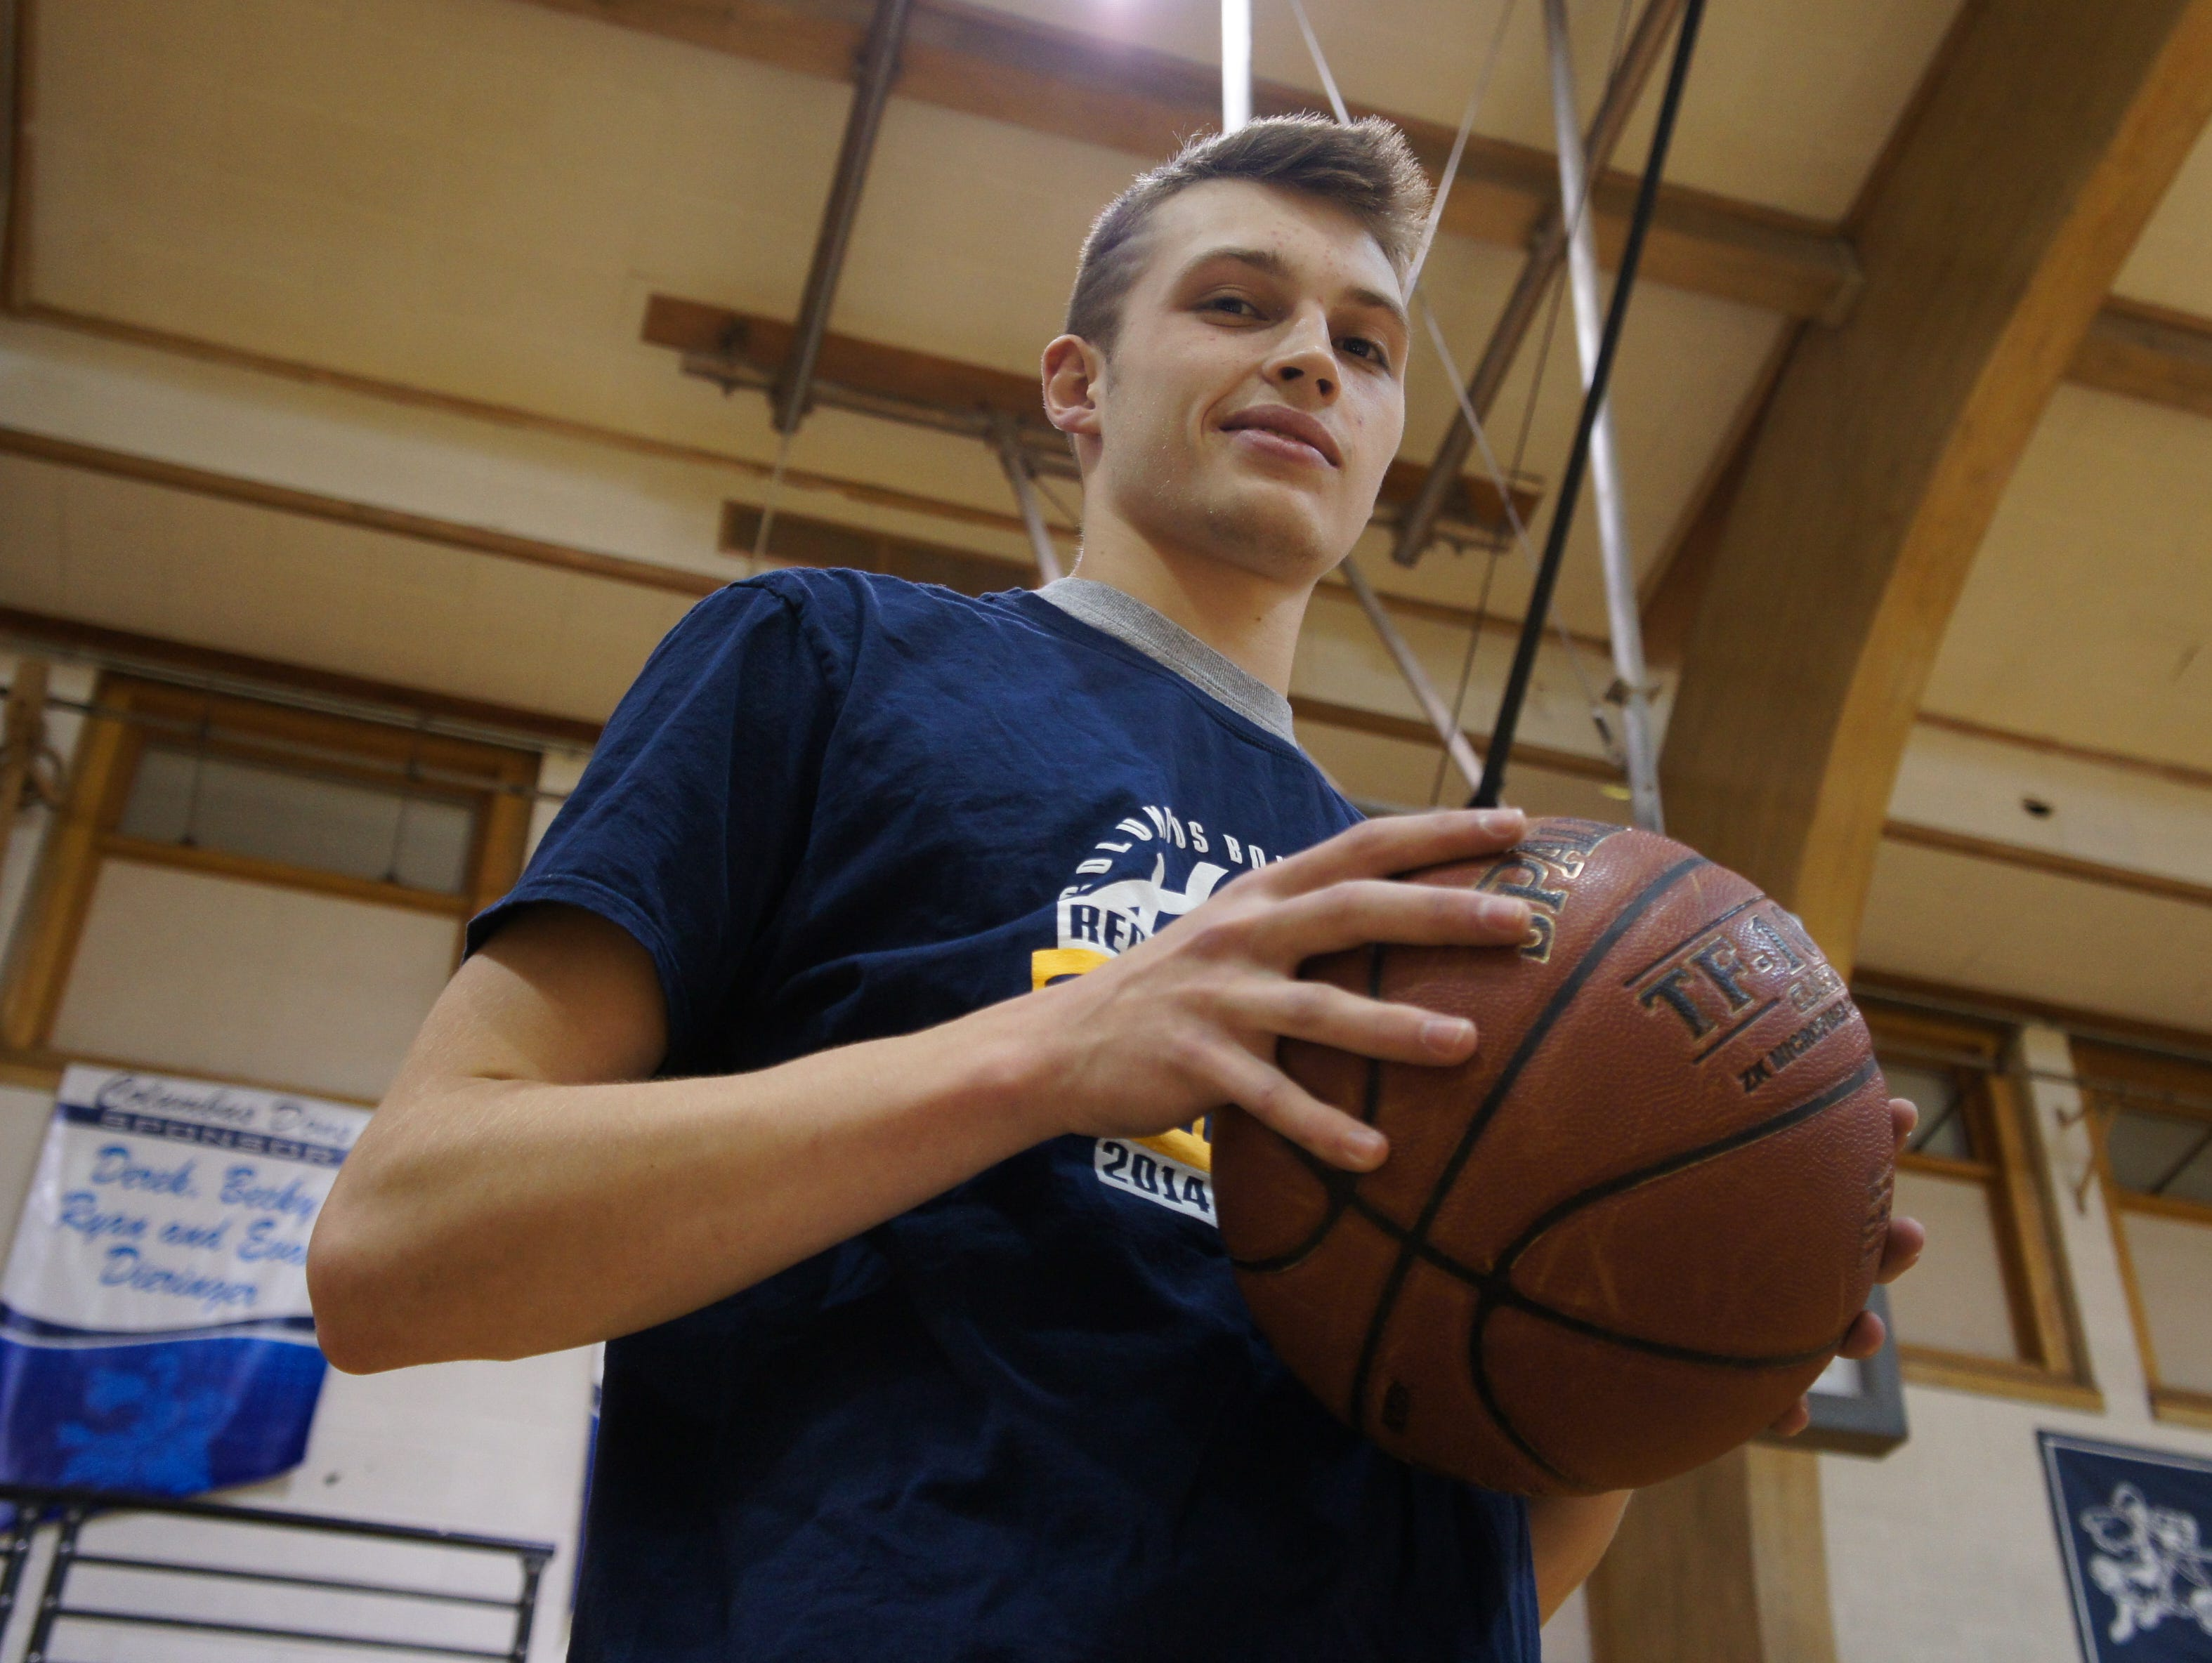 Columbus Catholic senior Evan Nikolai was has been on the Dons varsity basketball team since his freshman year. He helped the team score 101 points in a win last Friday.